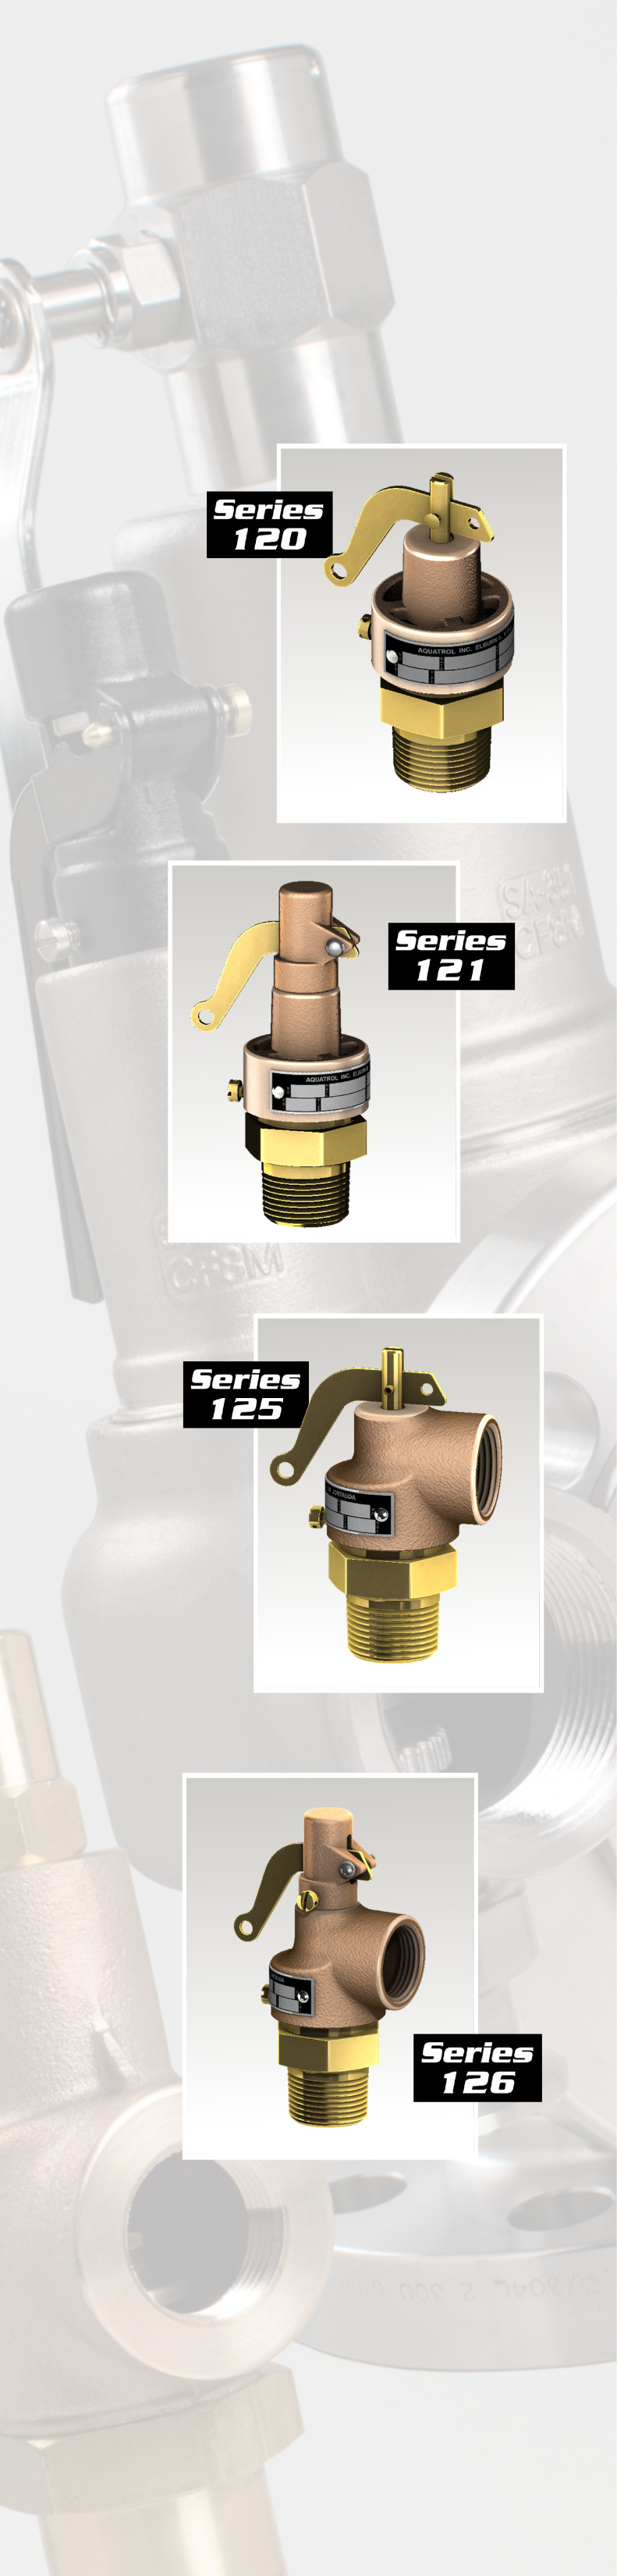 Liquid Relief Valves